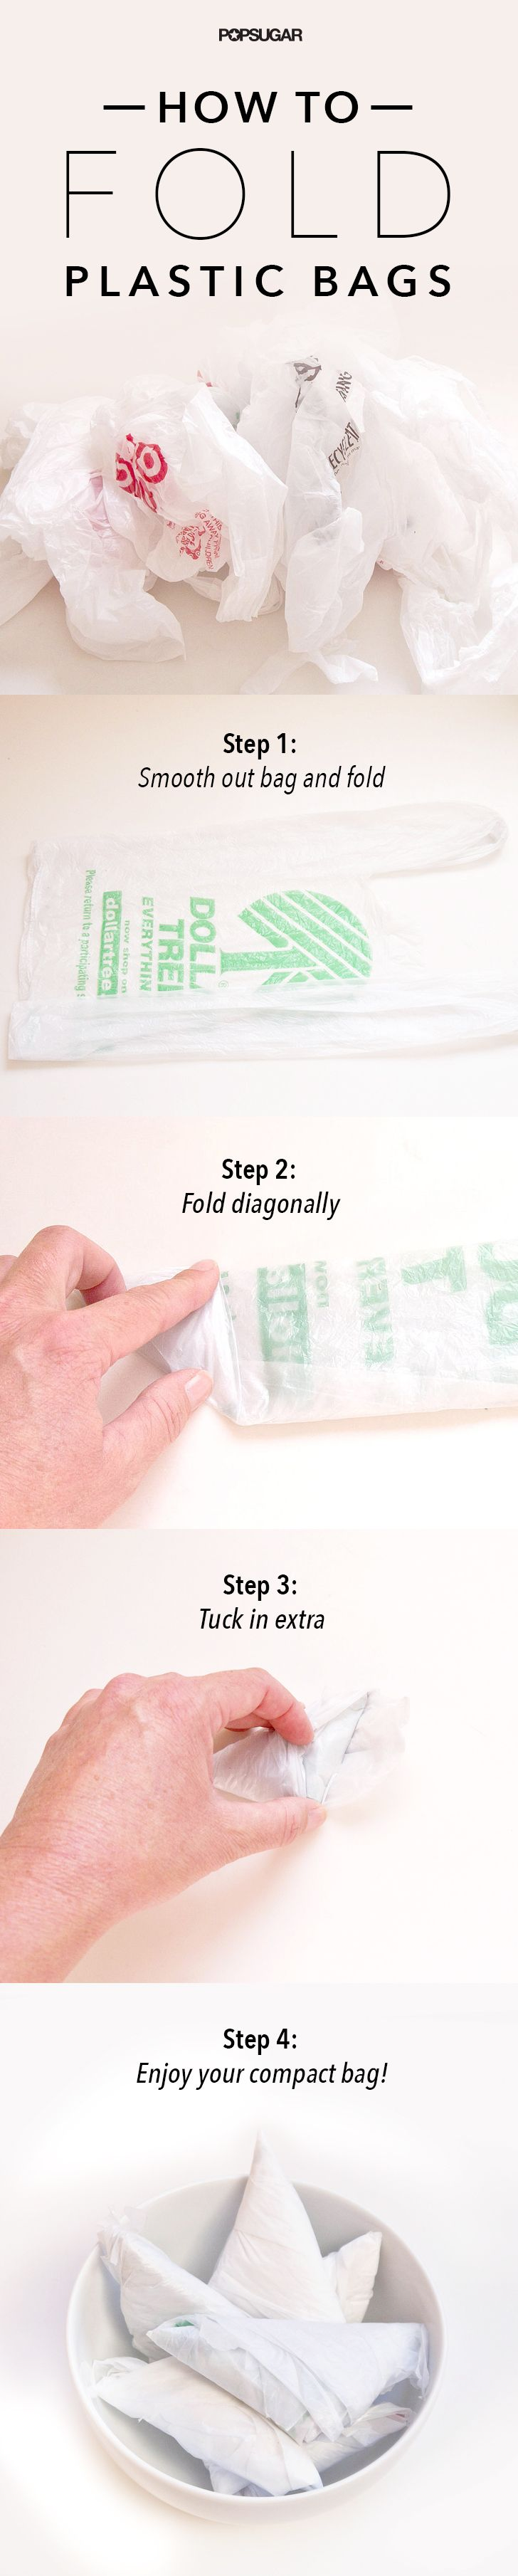 Fold plastic bags - east to store and reuse. Simple step to save our Earth.